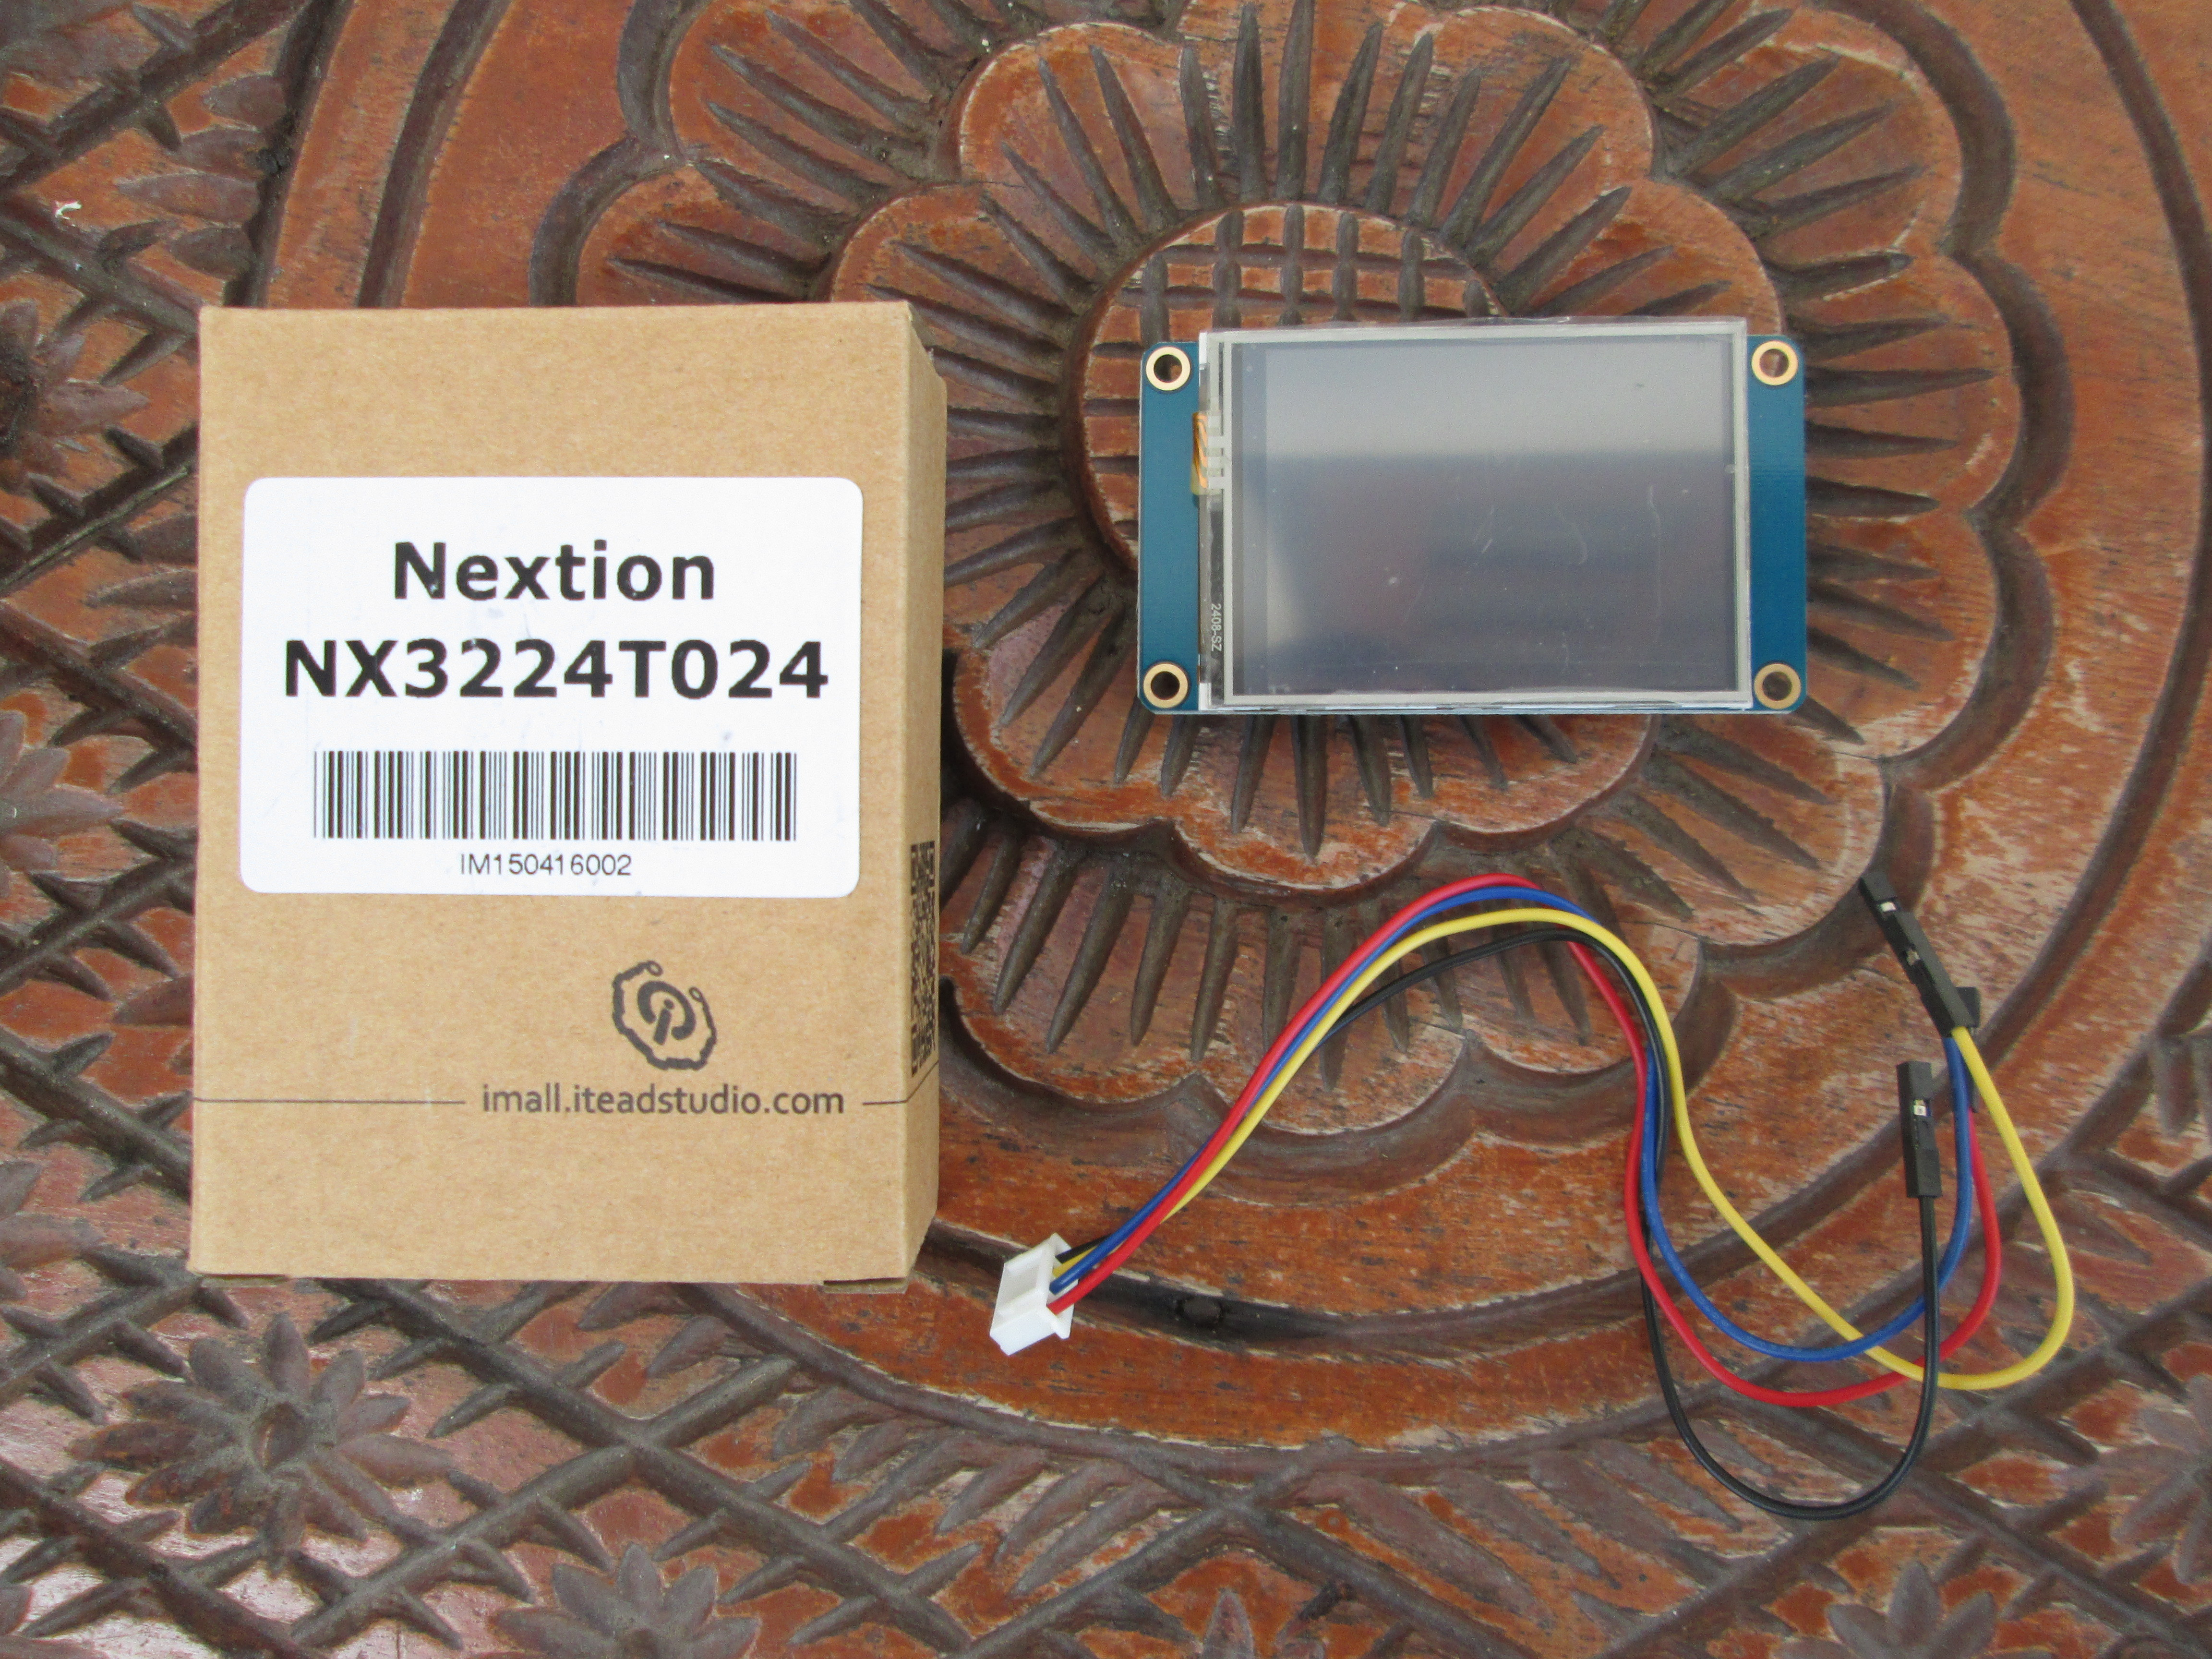 How To Use Nextion Serial Touchscreen Displays Part 1 Standalone Mode Schematic Of The Rs232 Adapter Click Enlarge